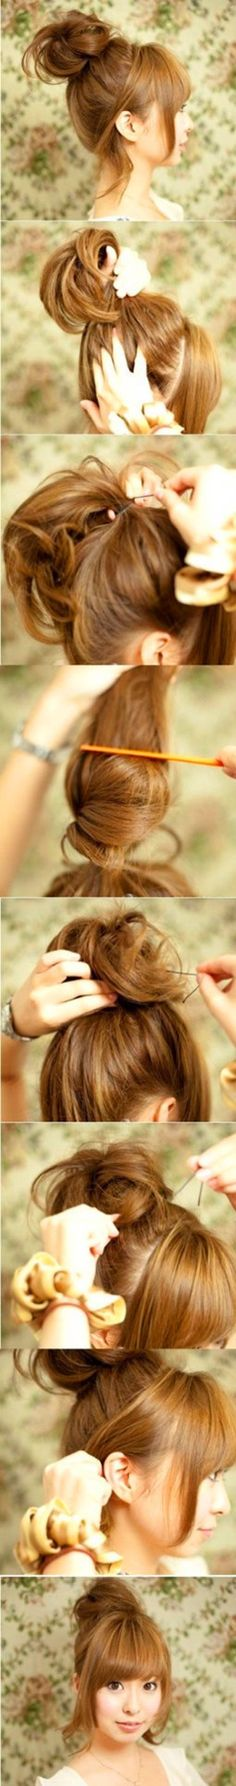 DIY: Cute Updo if you put some some more of those layers up